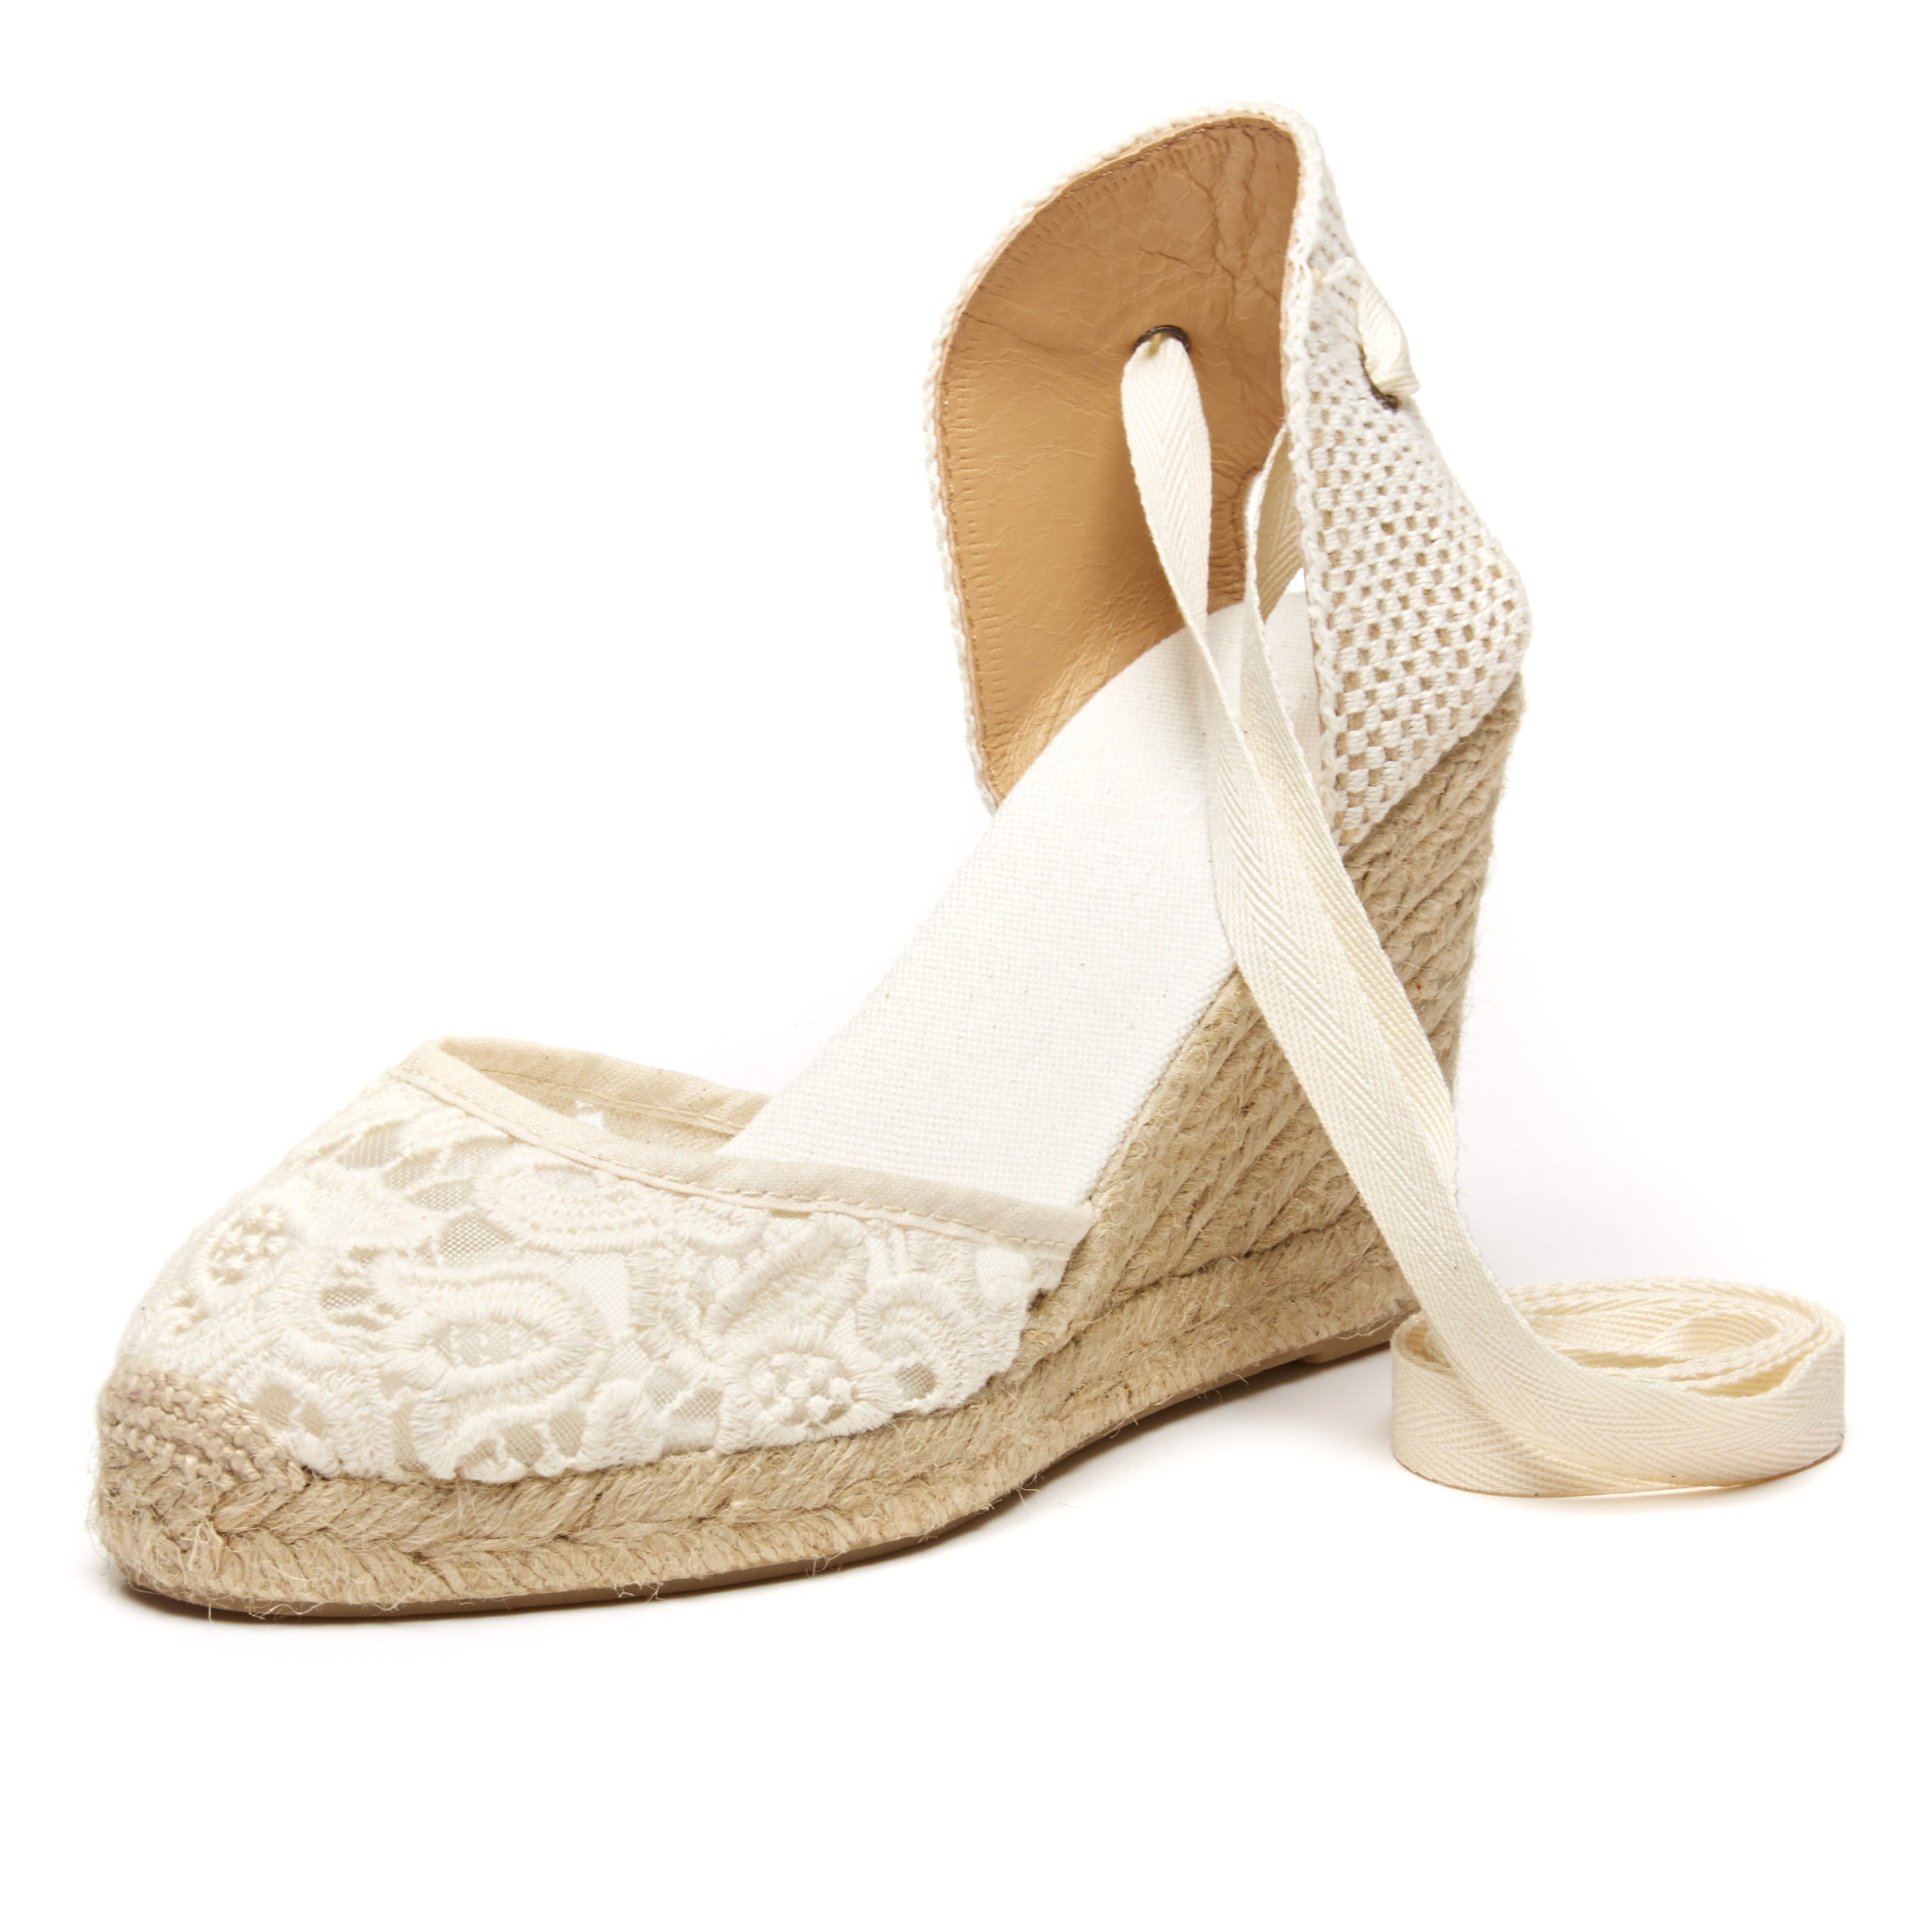 de6a436fd66 Soludos Ivory Tulip Lace Tall Wedge for Women - Soludos Espadrilles